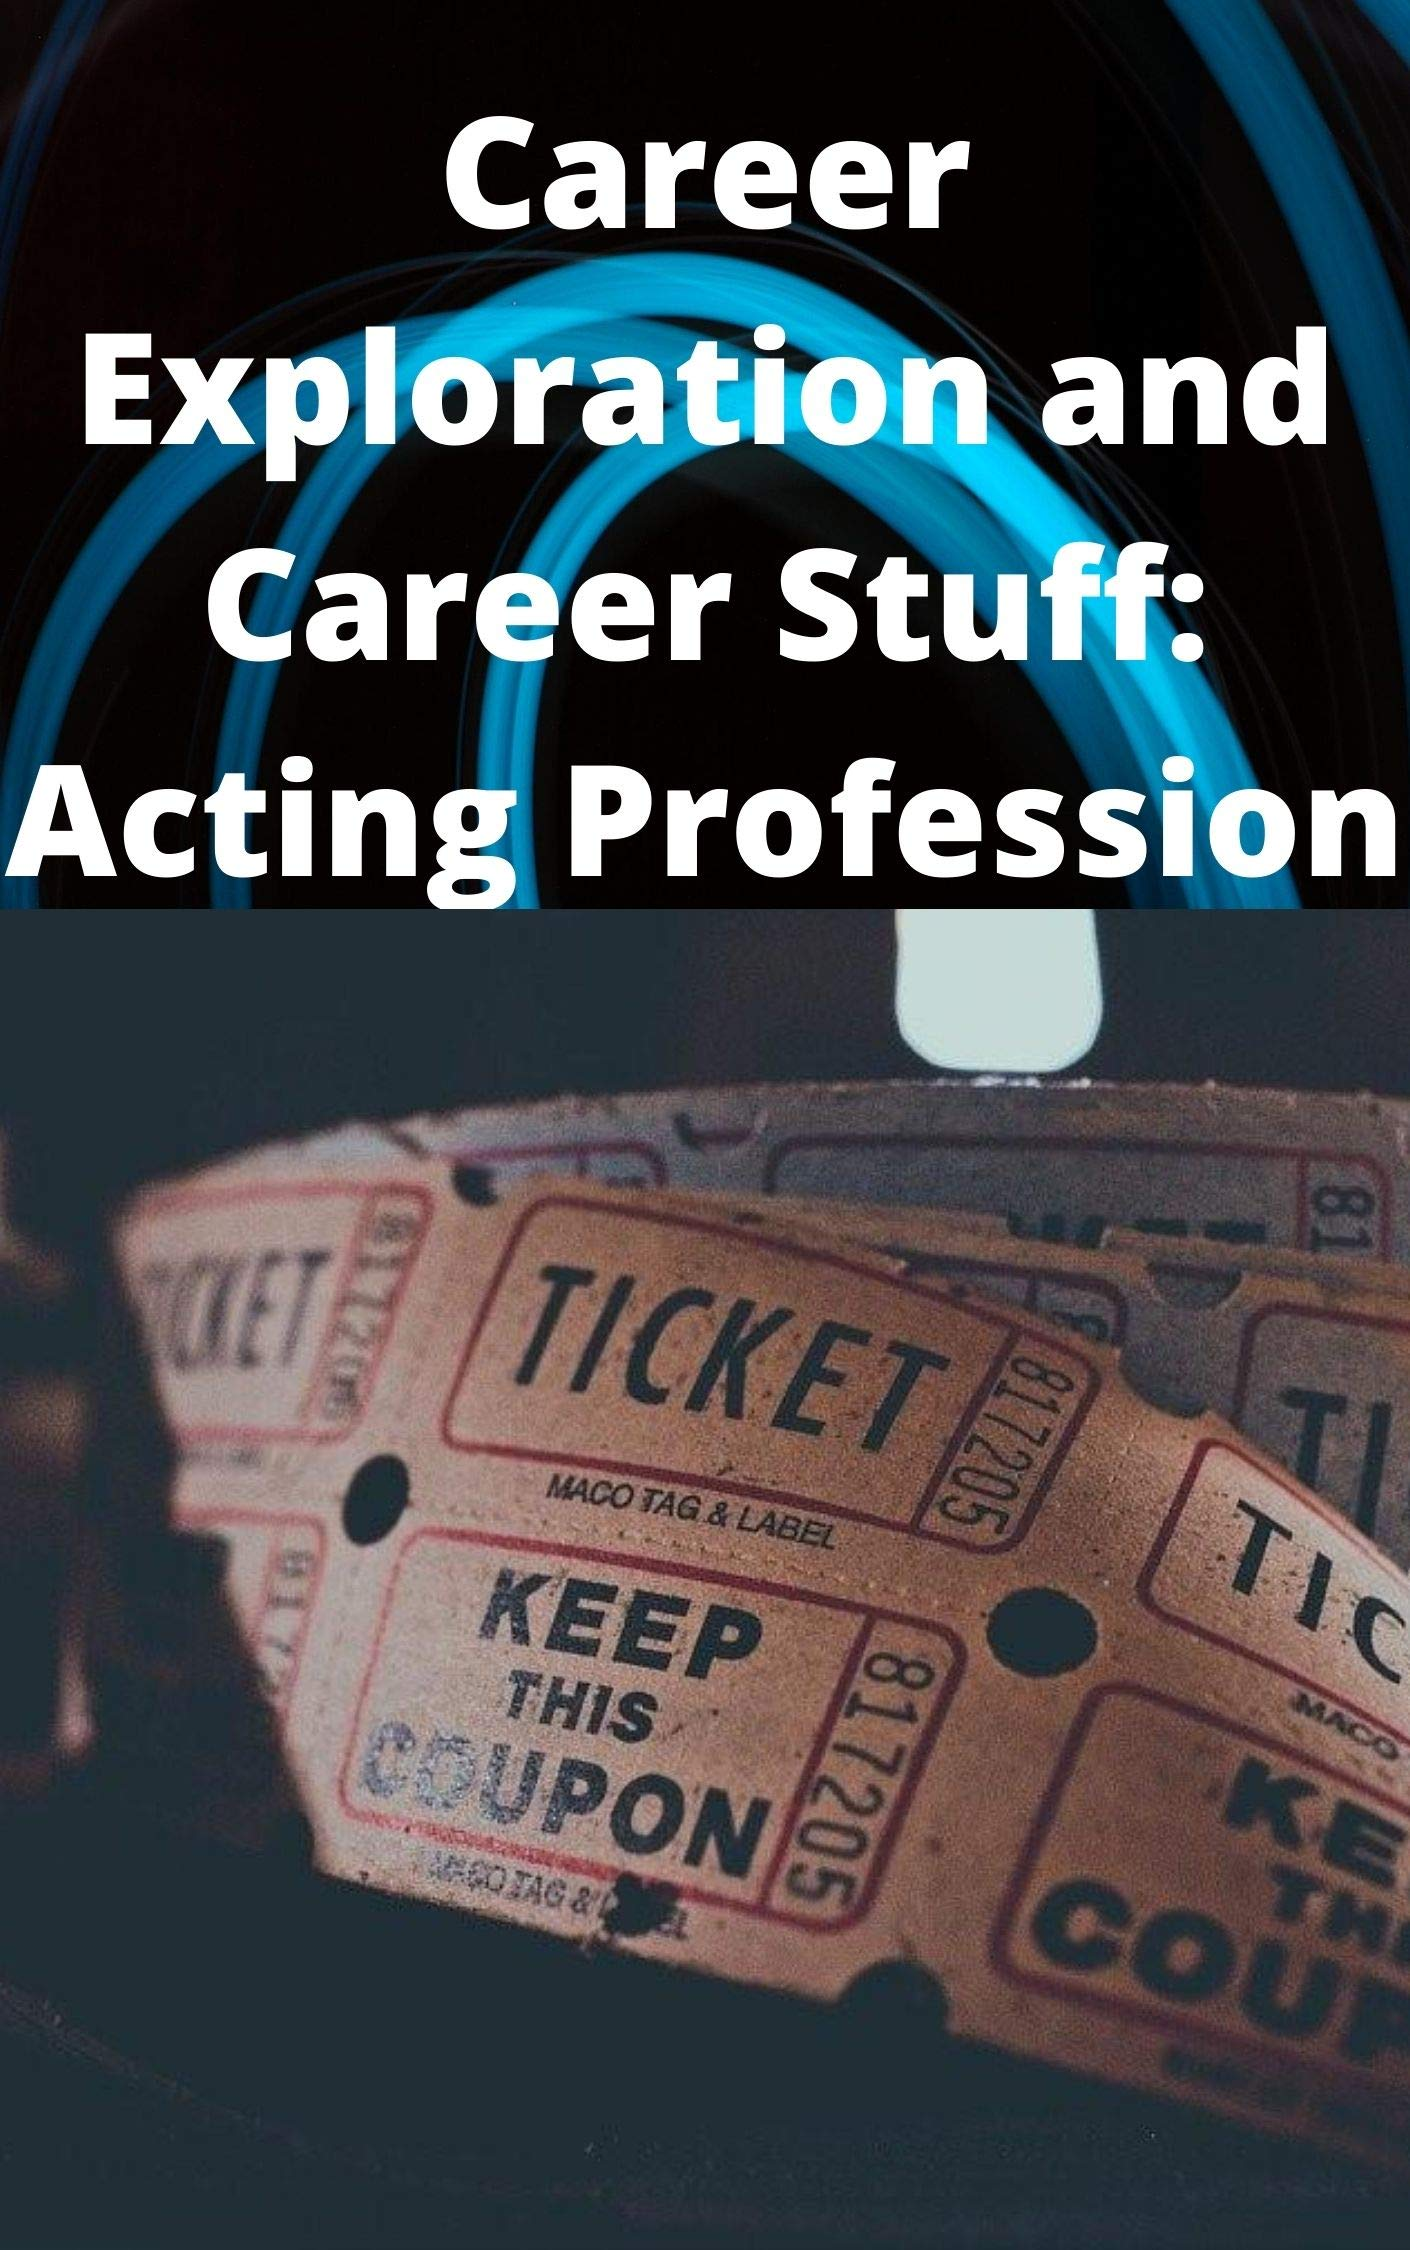 Career Exploration and Career Stuff: Acting Profession